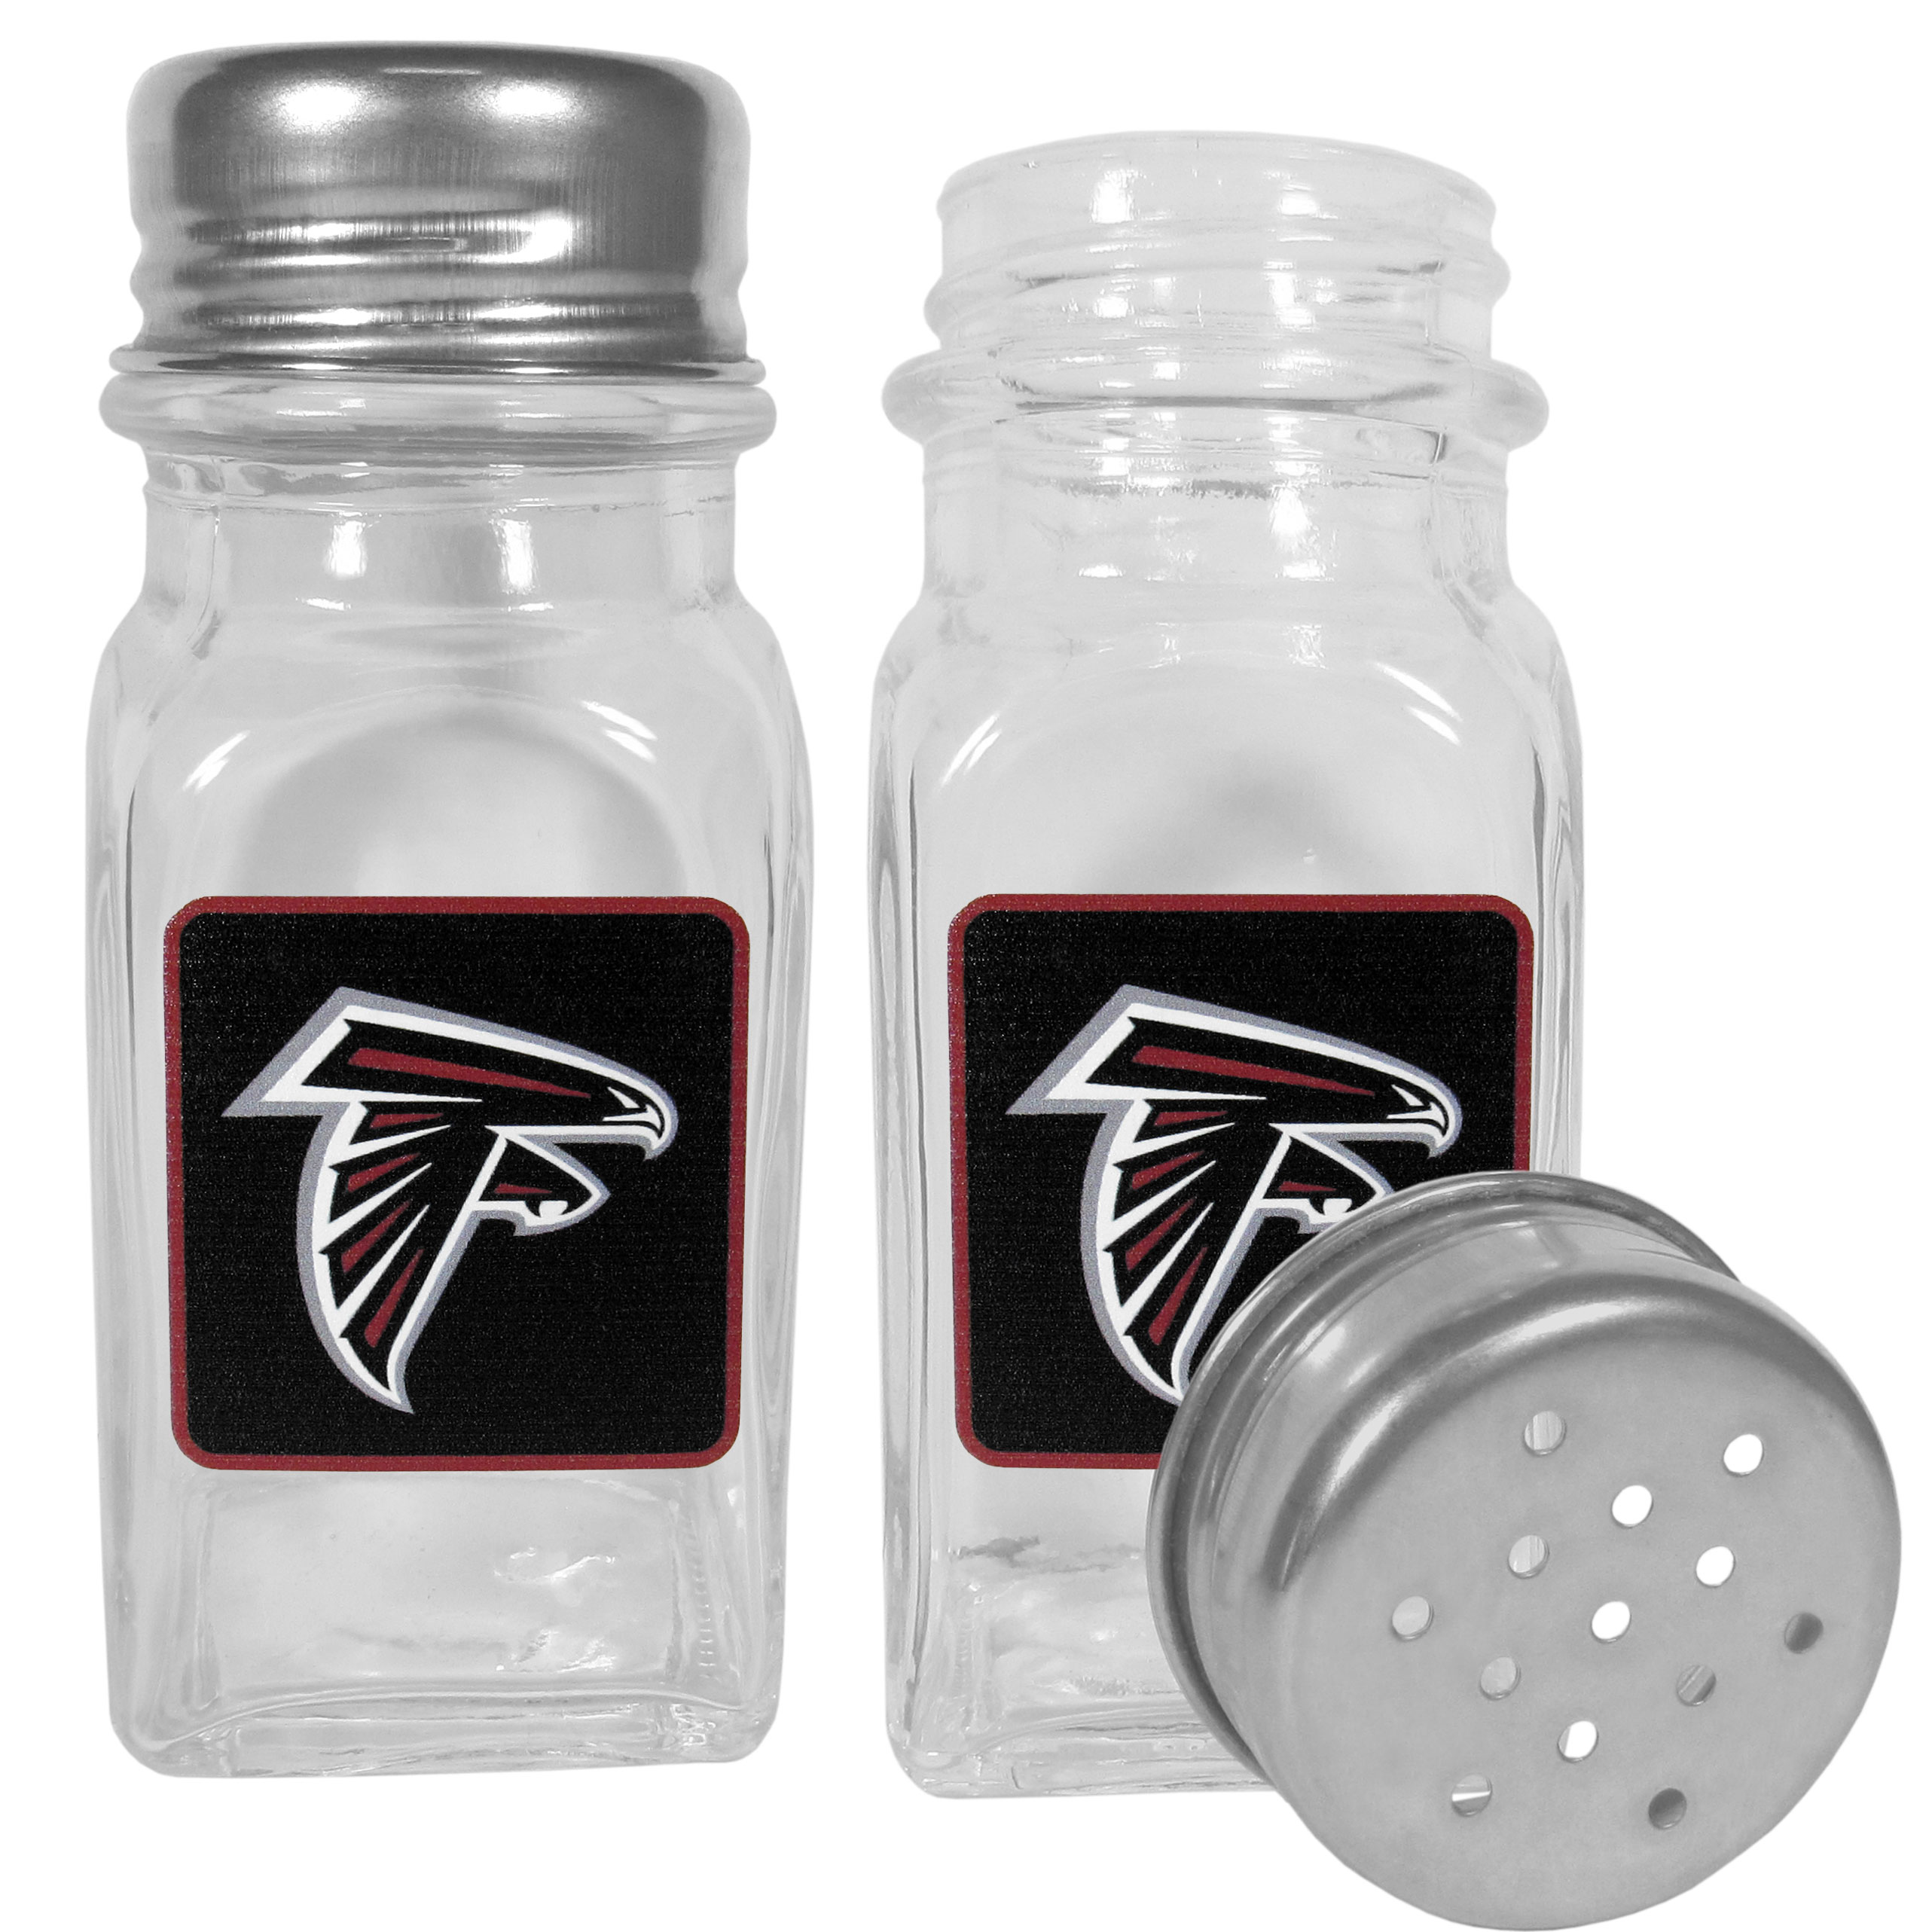 Atlanta Falcons Graphics Salt and Pepper Shaker - No tailgate party is complete without your Atlanta Falcons salt & pepper shakers featuring bright team logos. The diner replica salt and pepper shakers are glass with screw top lids. These team shakers are a great grill accessory whether you are barbecuing on the patio, picnicing or having a game day party.